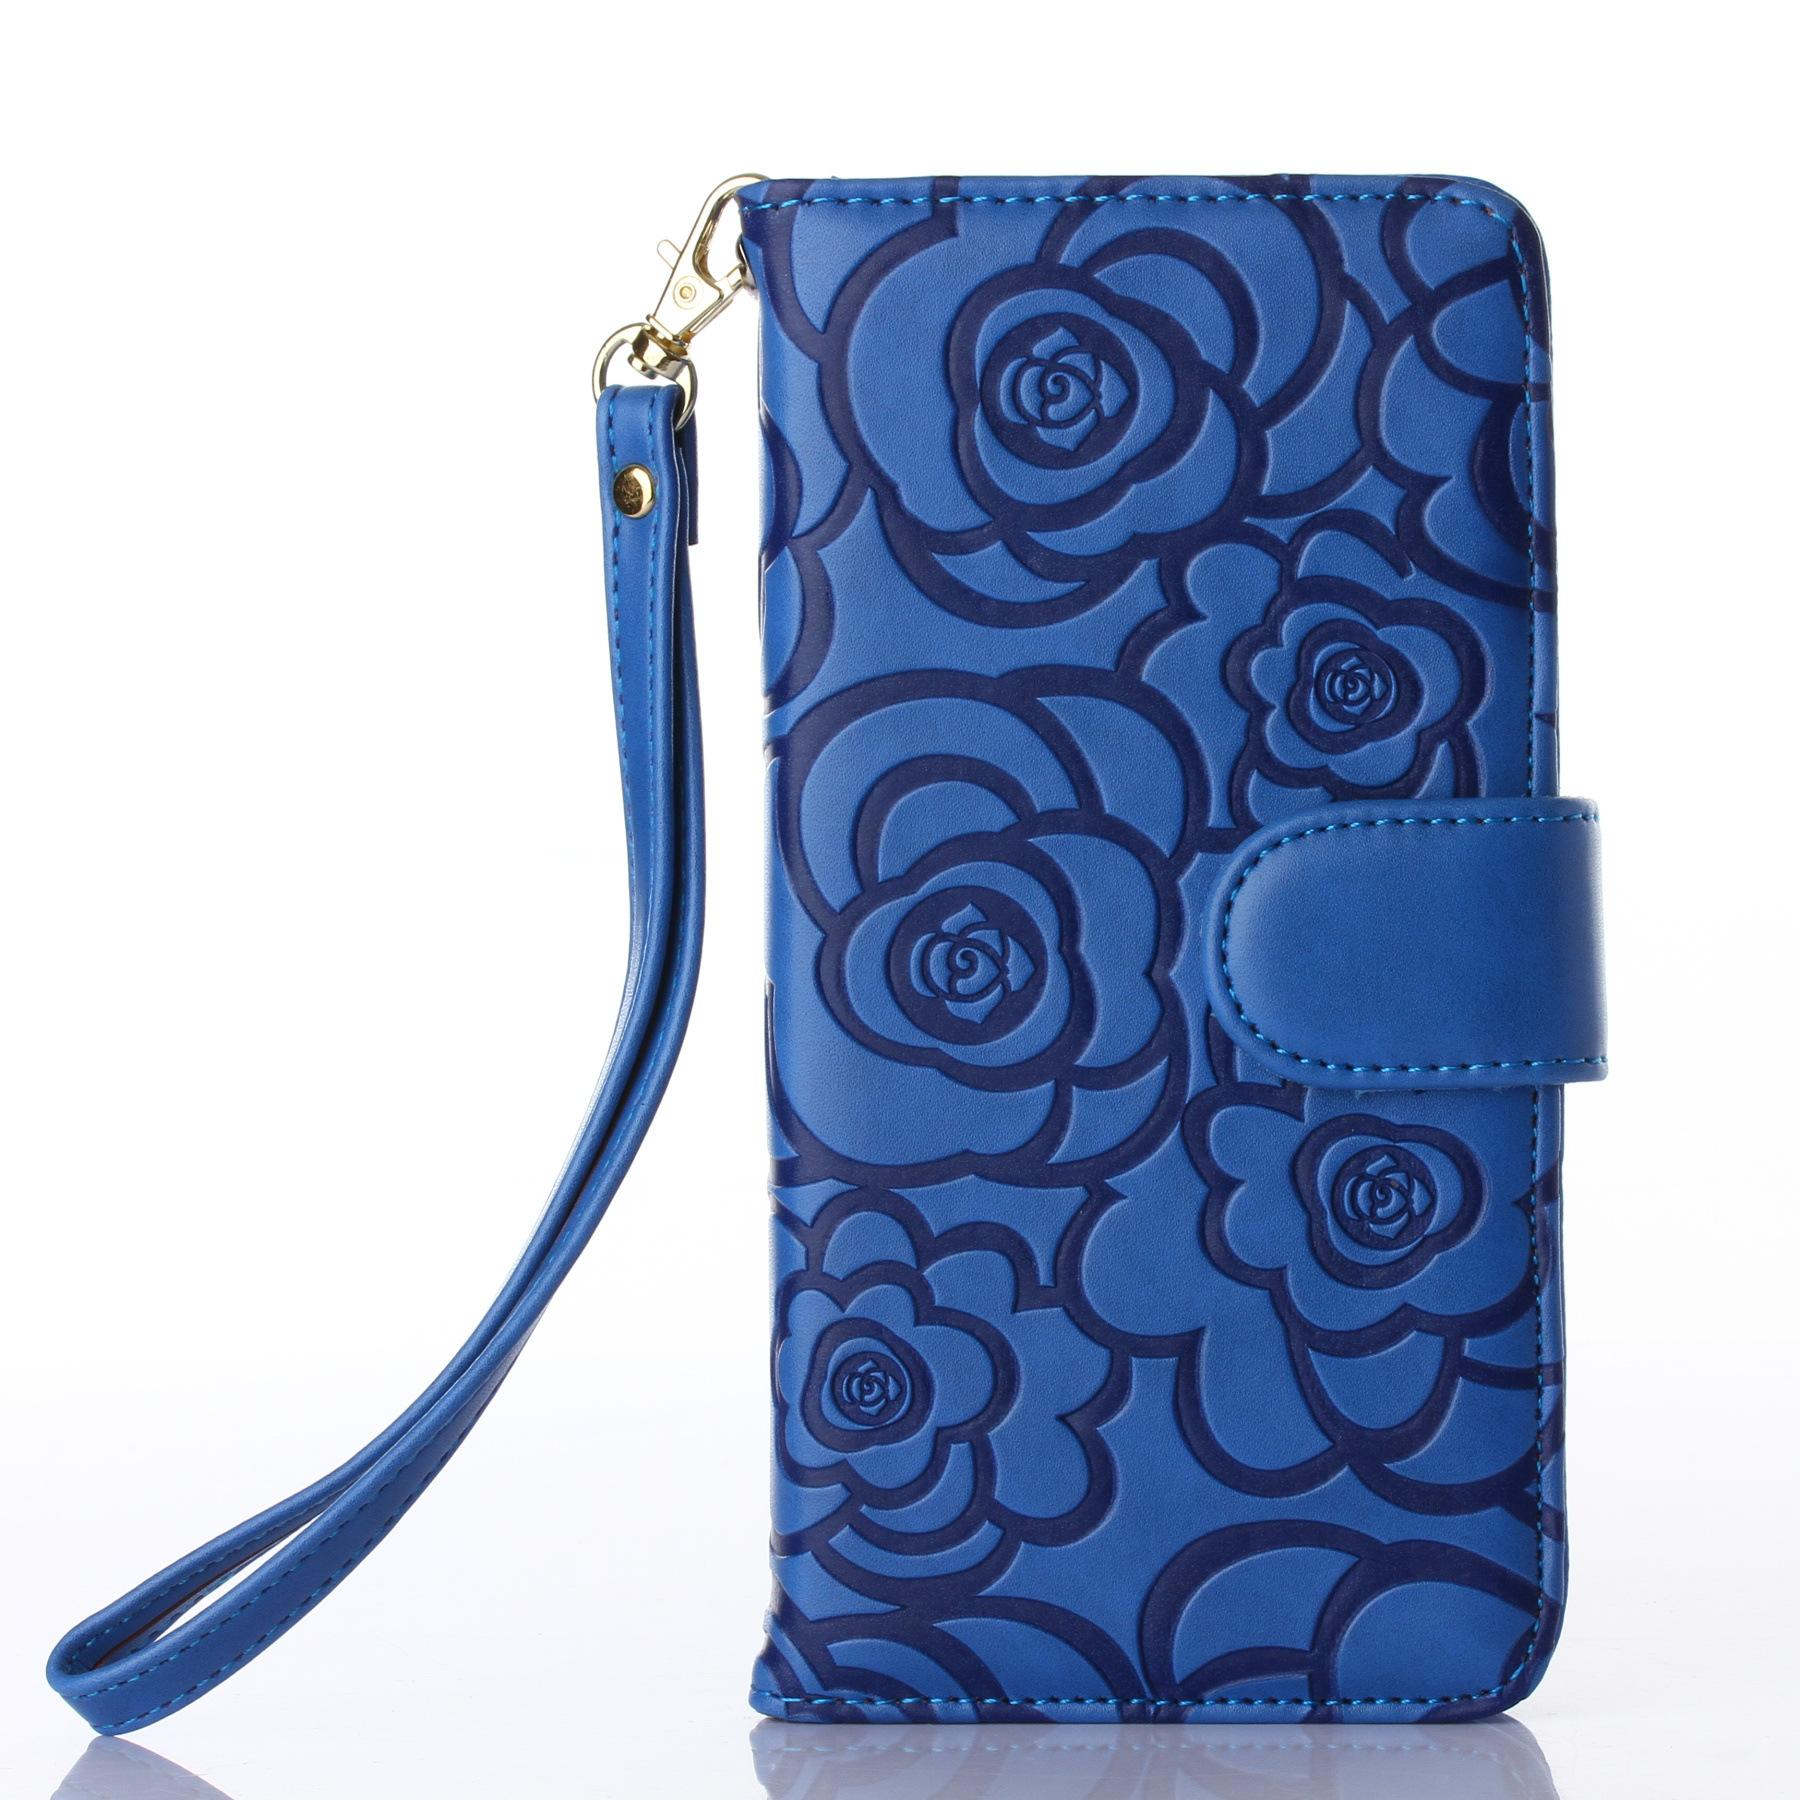 cool wallet leather case for iphone 5 6 6s 7 7s plus samsung glaxy s7 edge 3d flower pattern. Black Bedroom Furniture Sets. Home Design Ideas